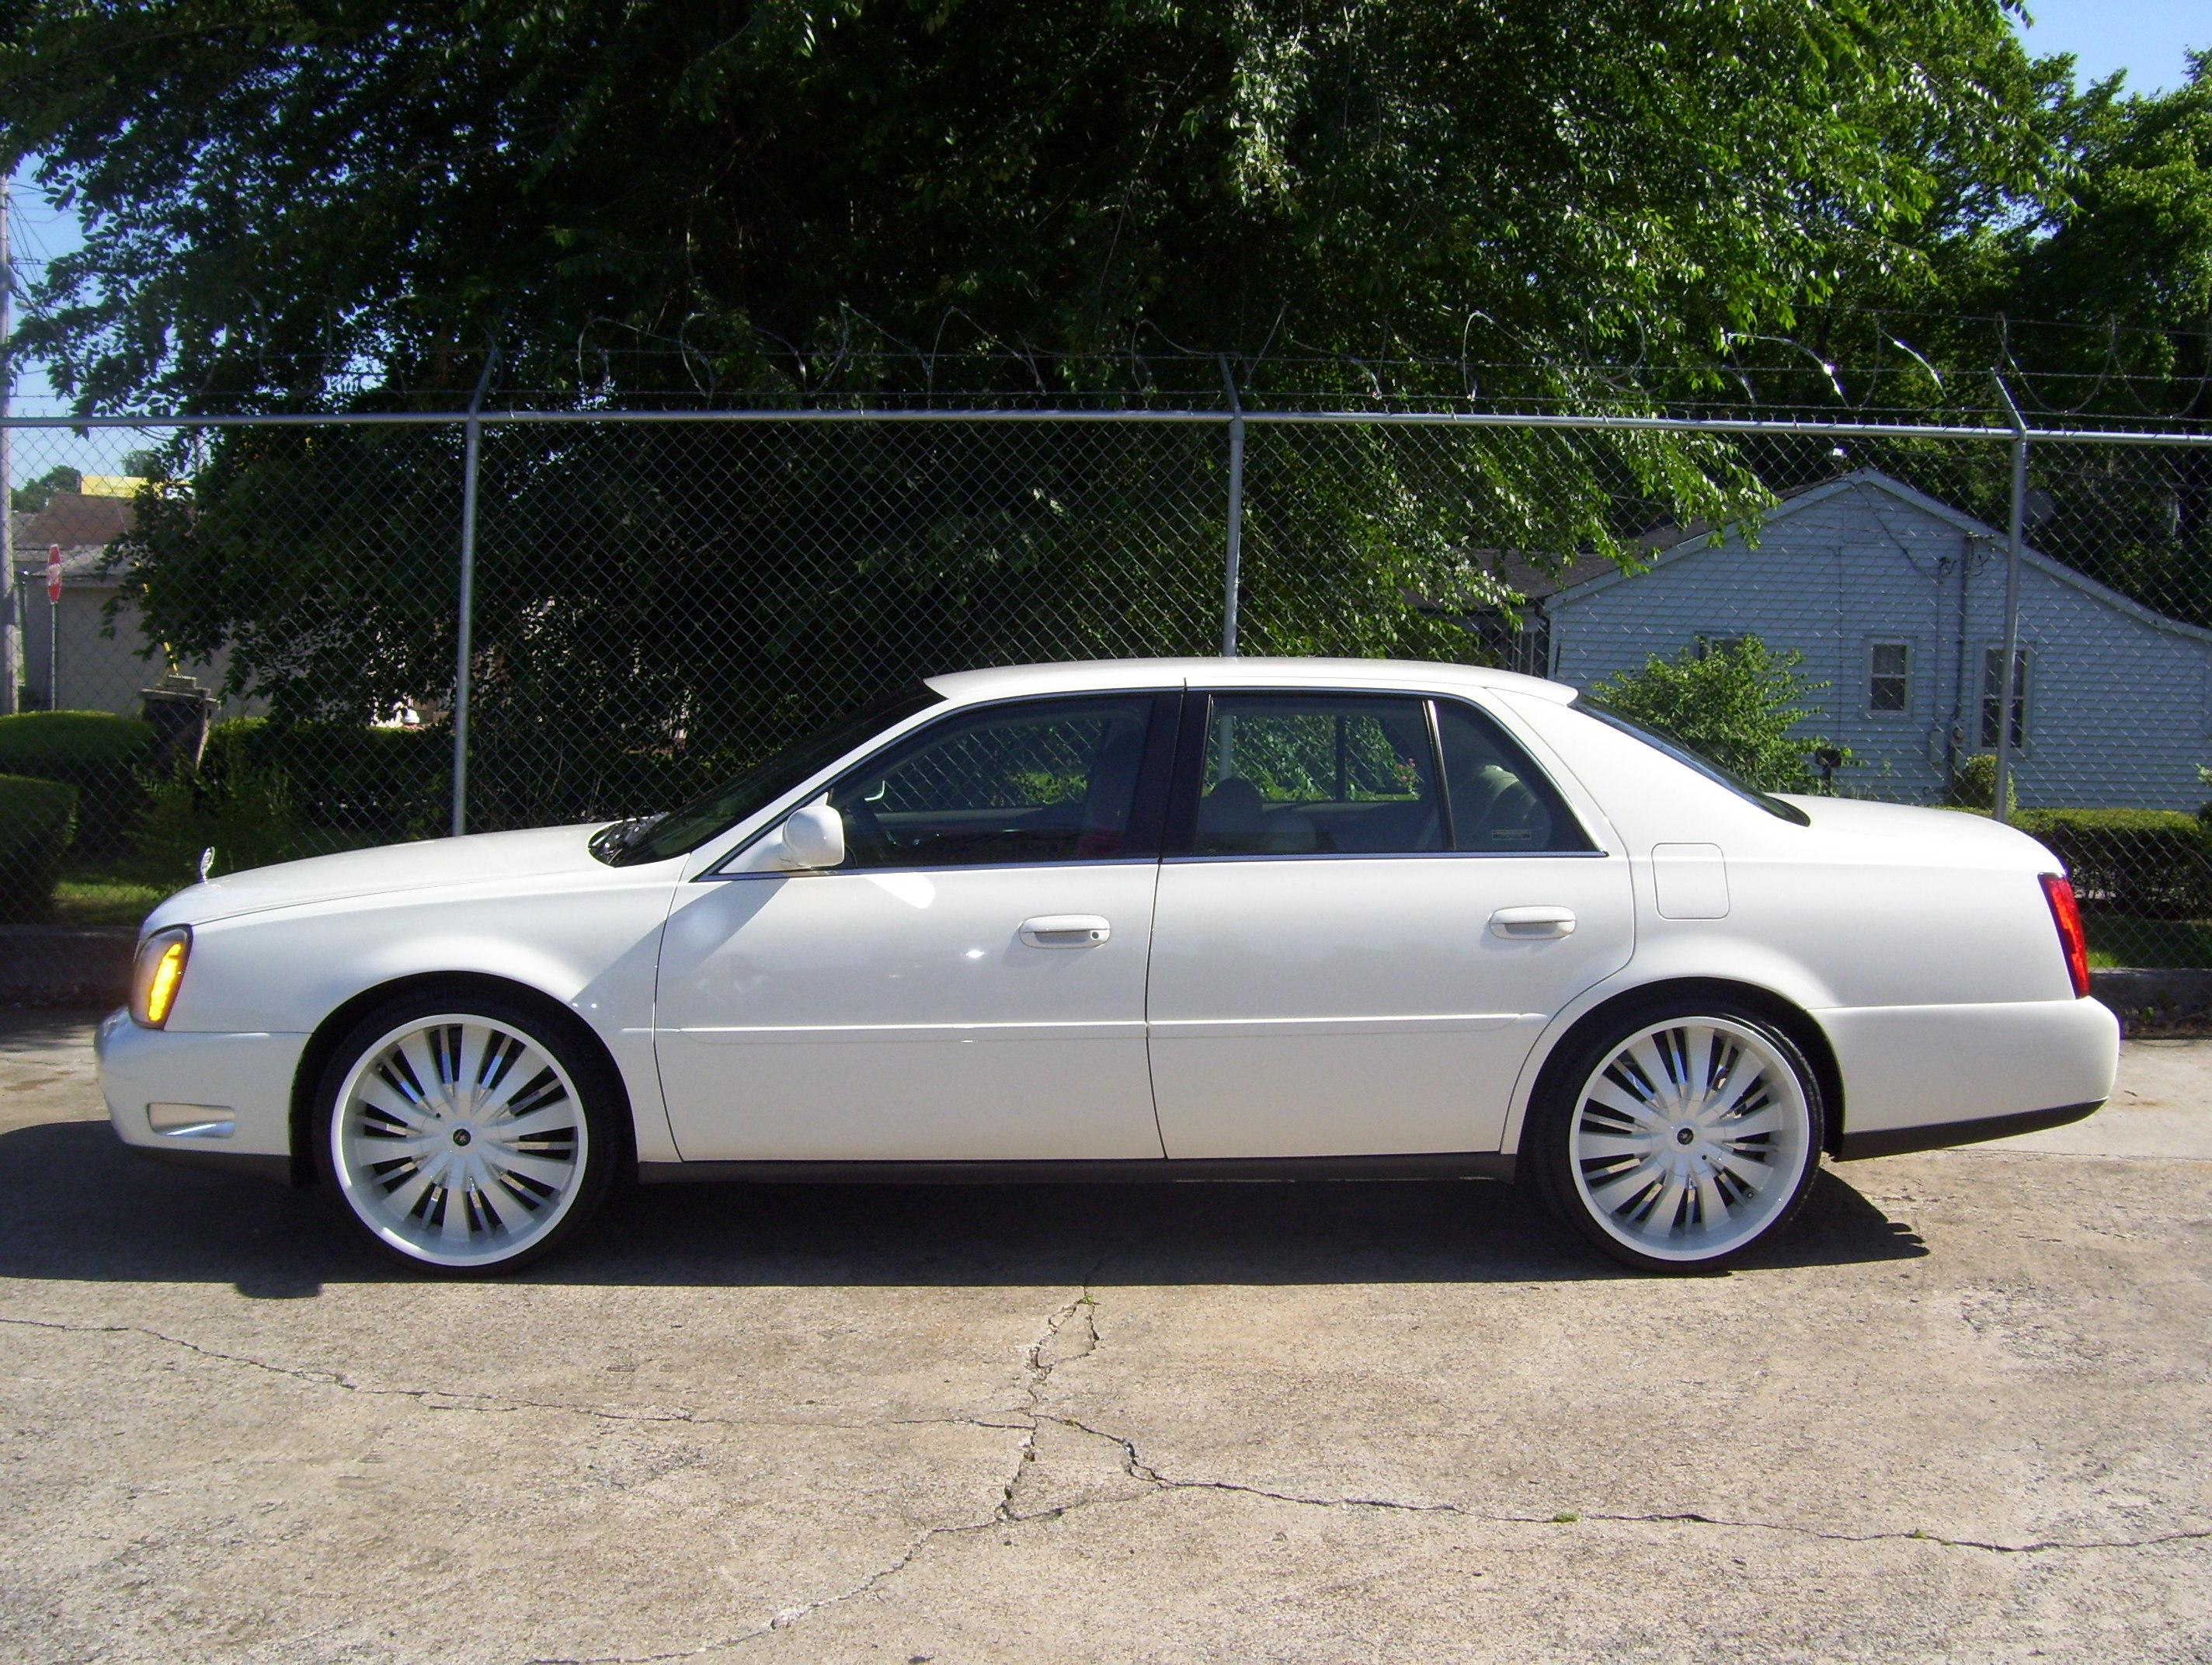 ironpuma07 39 s 2003 cadillac deville in nashville tn. Cars Review. Best American Auto & Cars Review